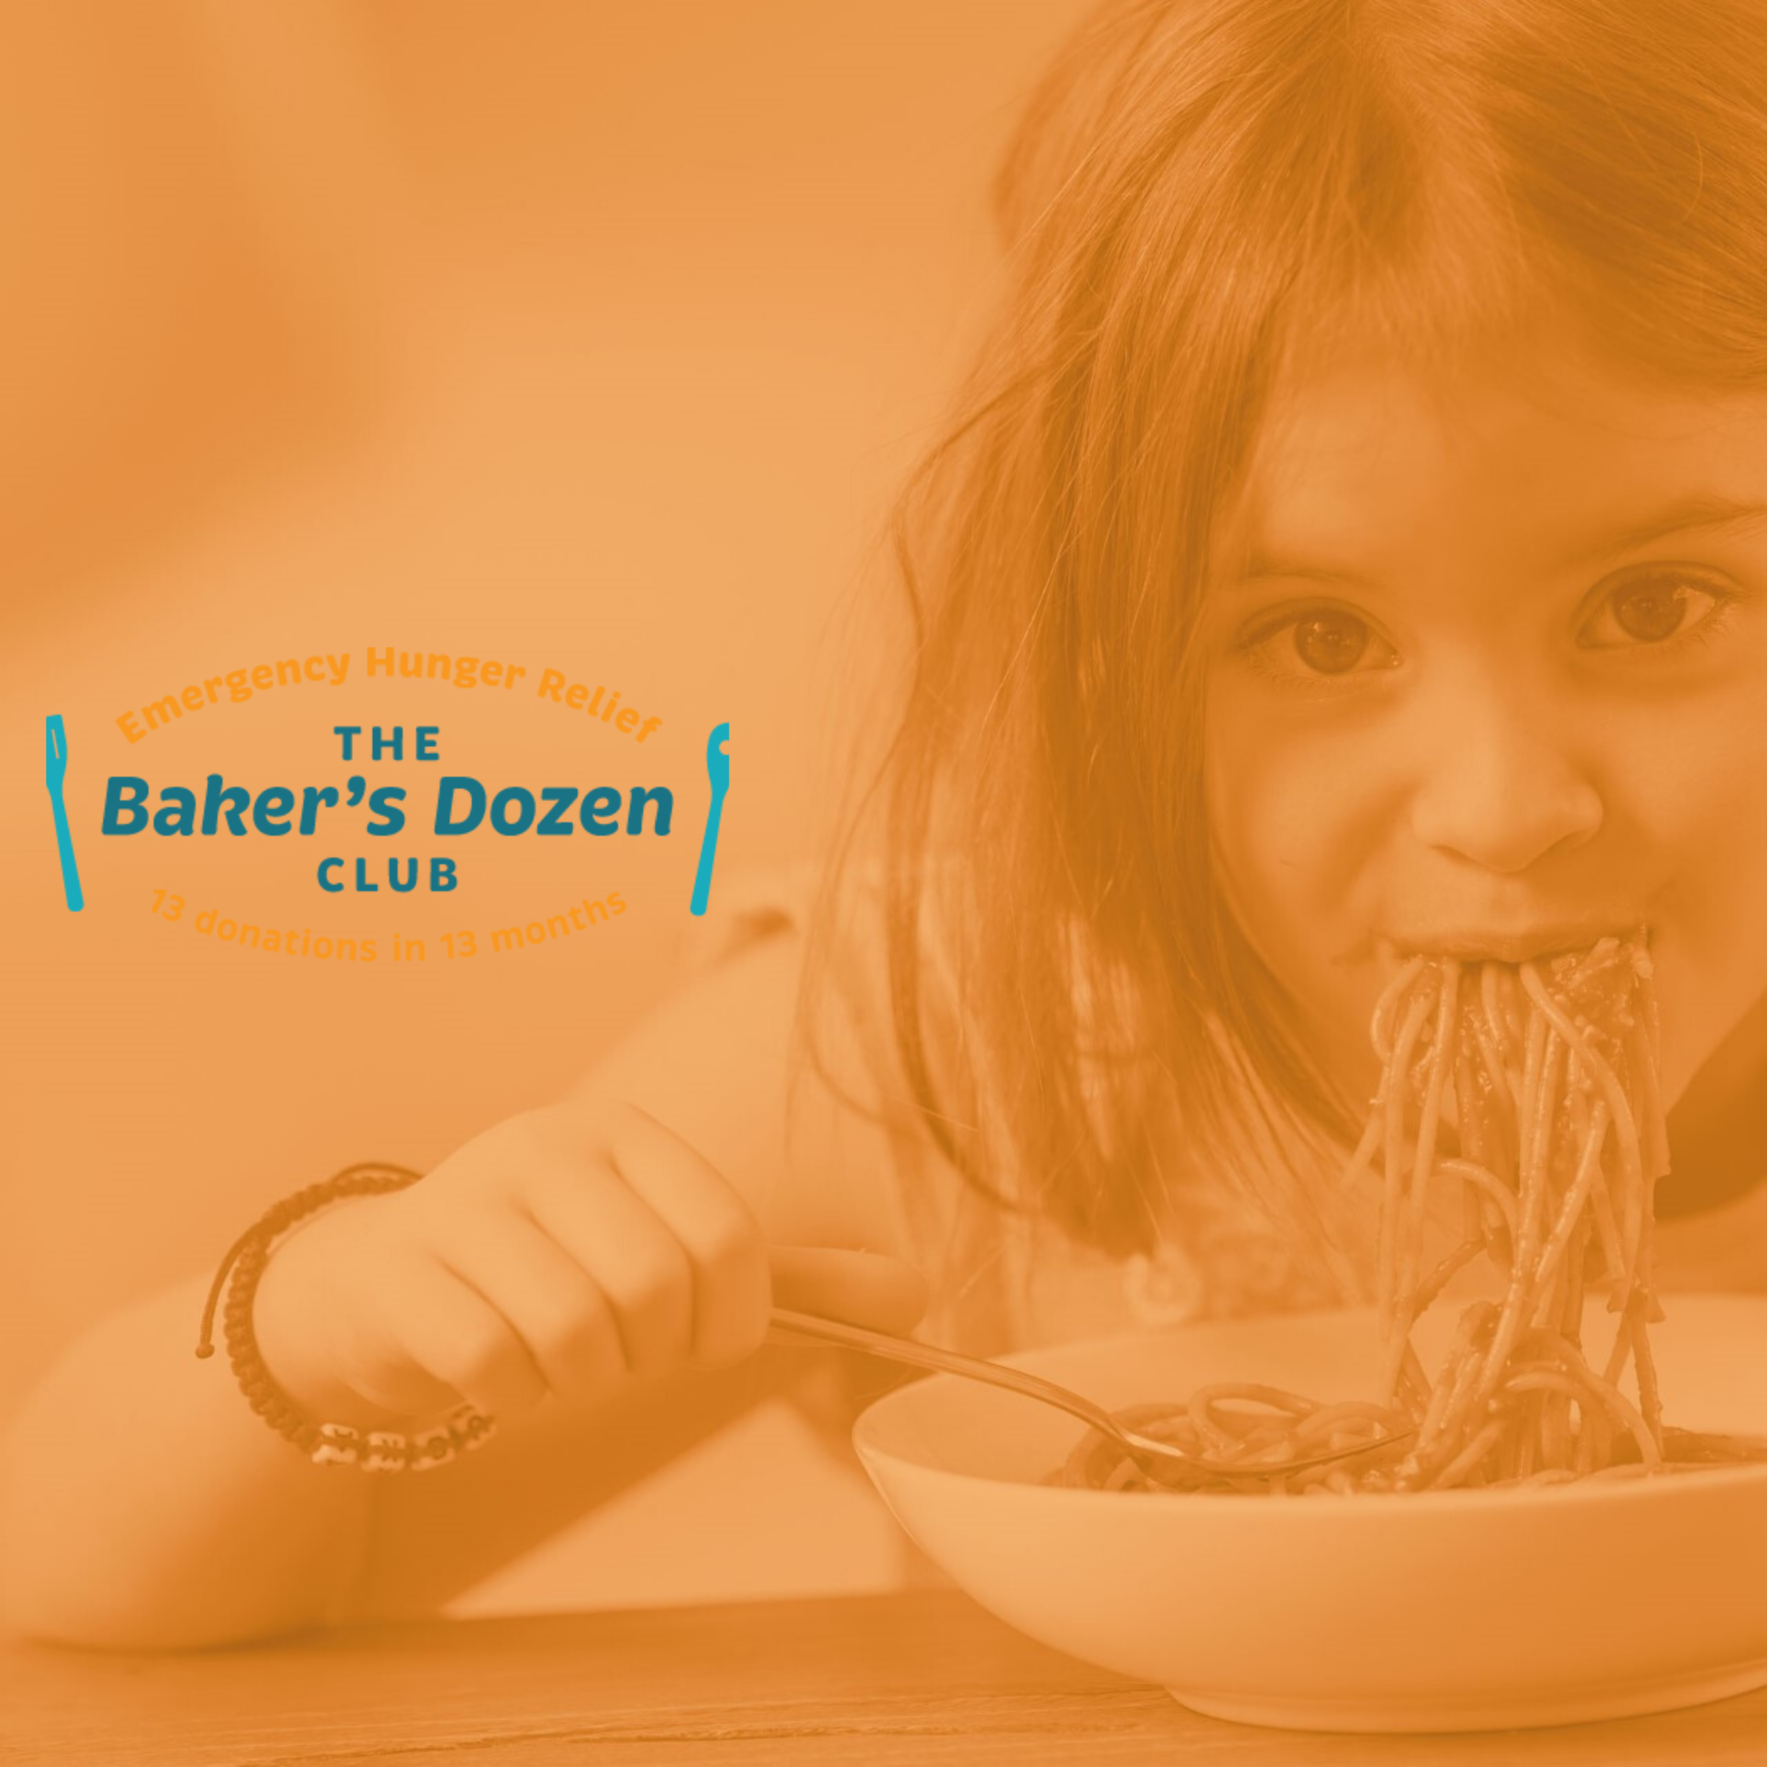 The Baker's Dozen: Emergency Hunger Relief image